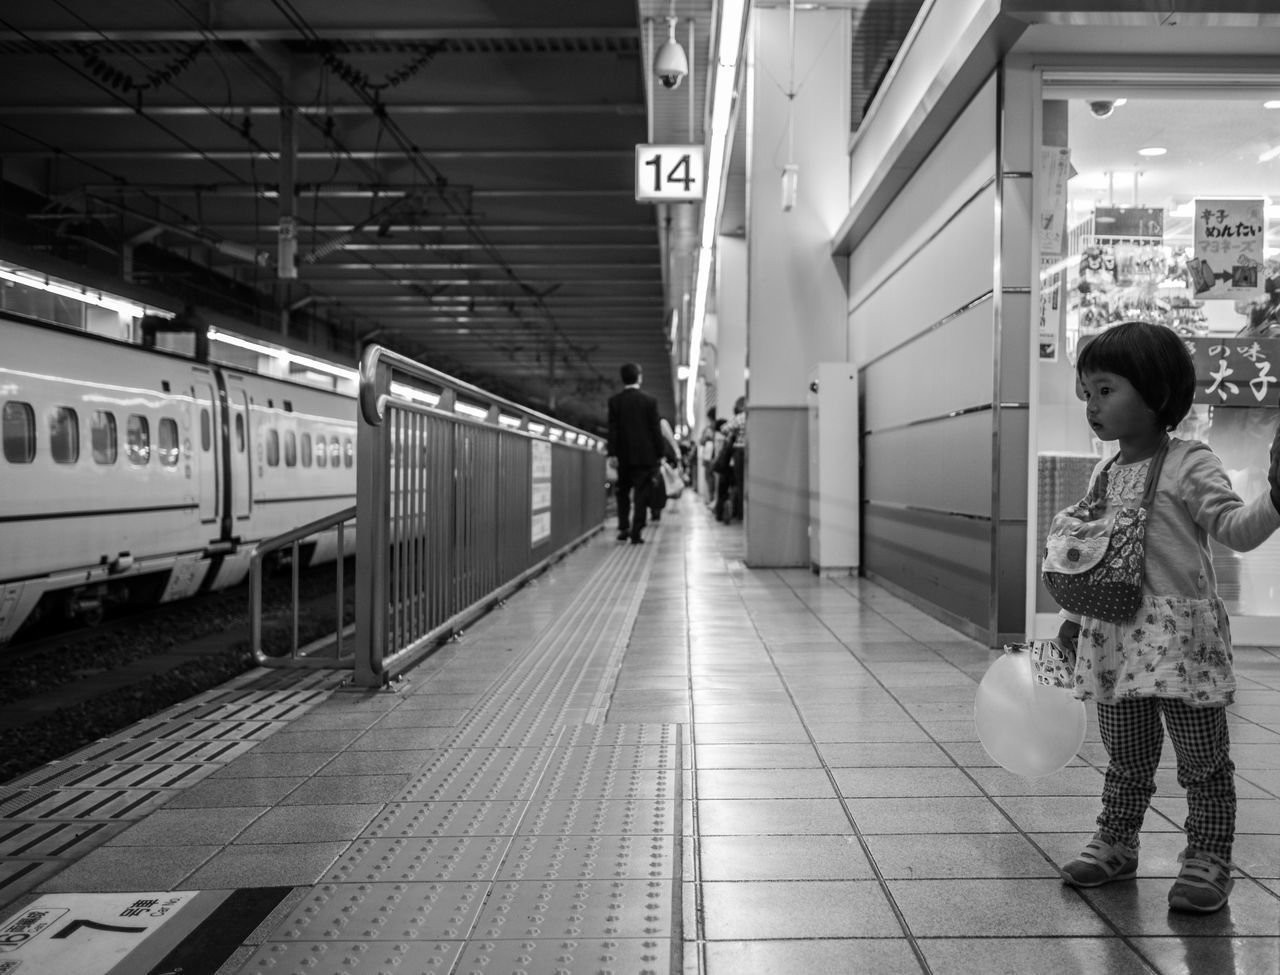 real people, transportation, full length, lifestyles, public transportation, railroad station platform, railroad station, casual clothing, childhood, rail transportation, indoors, standing, leisure activity, two people, men, illuminated, day, people